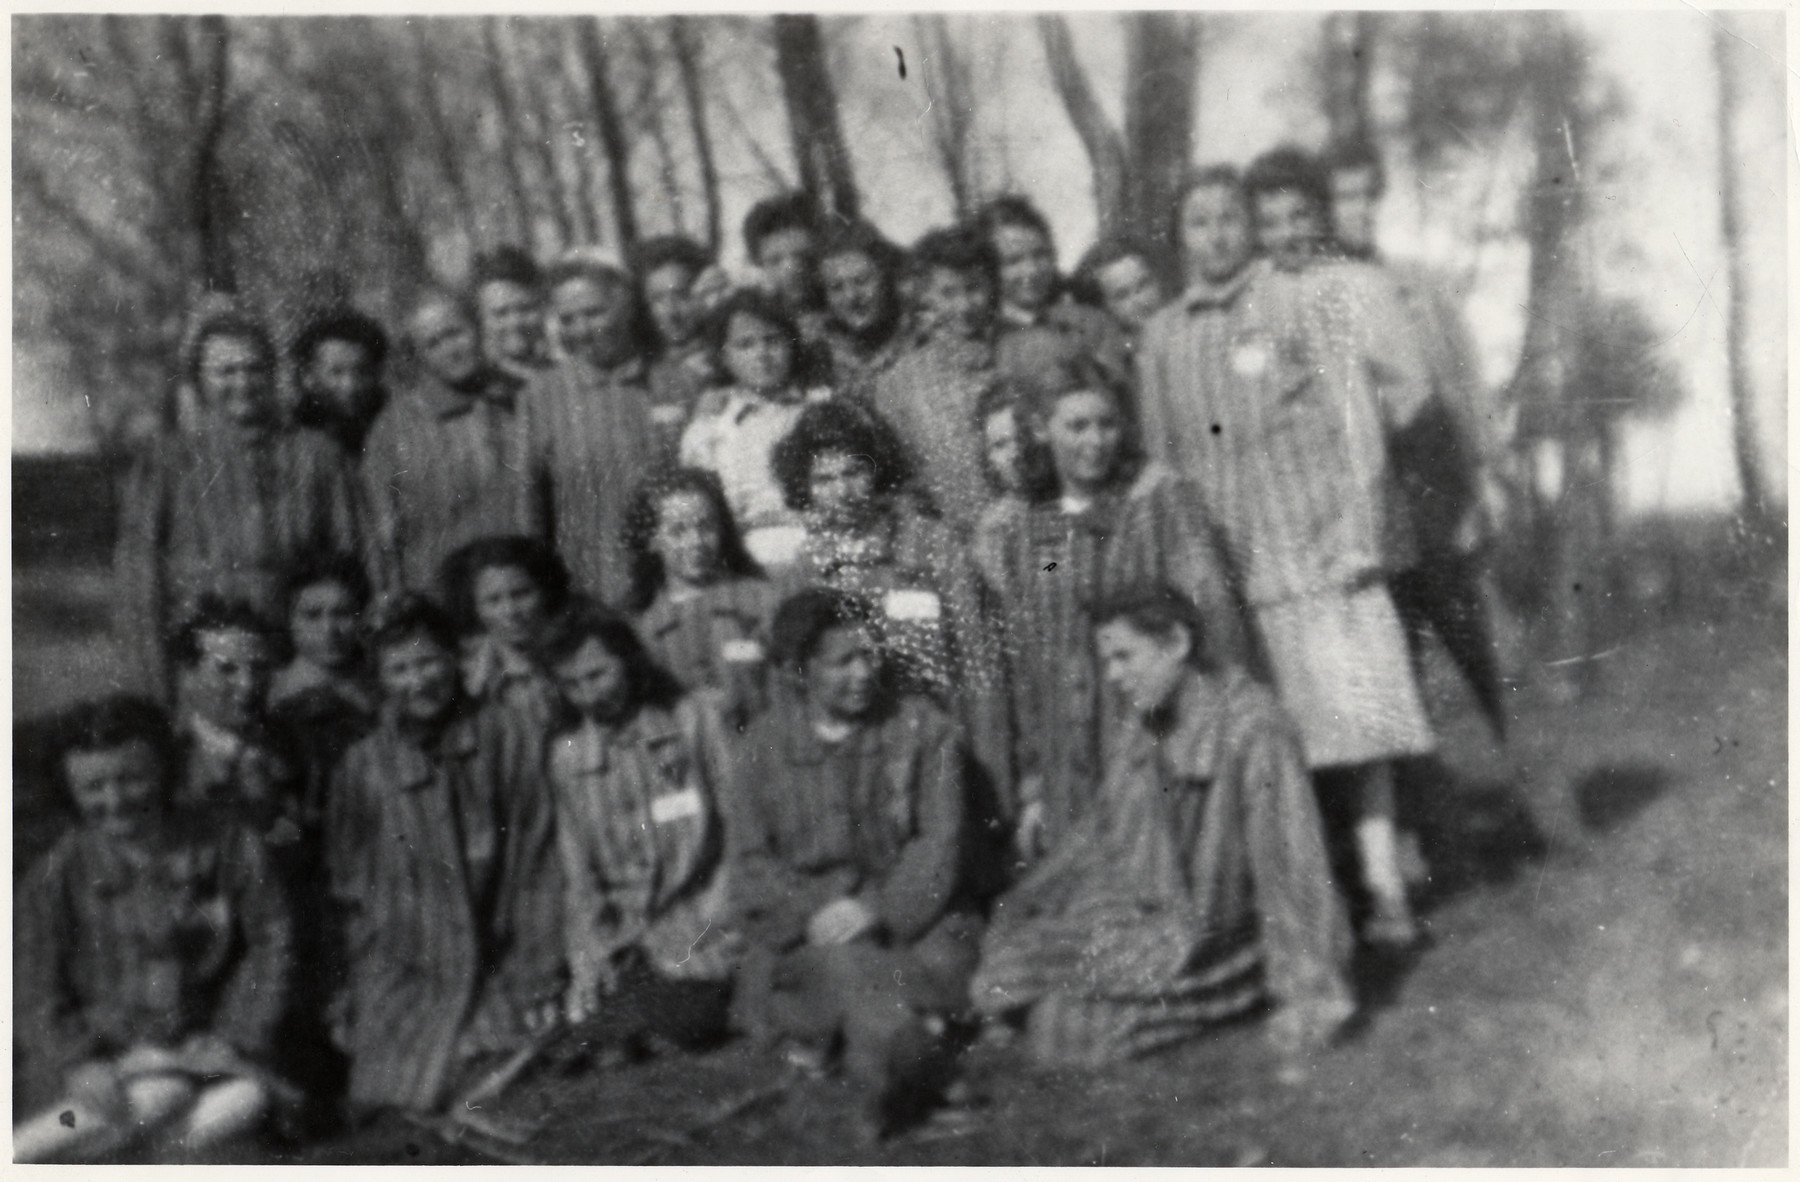 Group portrait of French and Belgian Jewish women recently liberated from the Ravensbrueck concentration camp.  Germaine Sephia is standing on the far left, and Esther Sephia is third from the left.  The SS had singled them out as Turkish citizens and put them in a separate block.